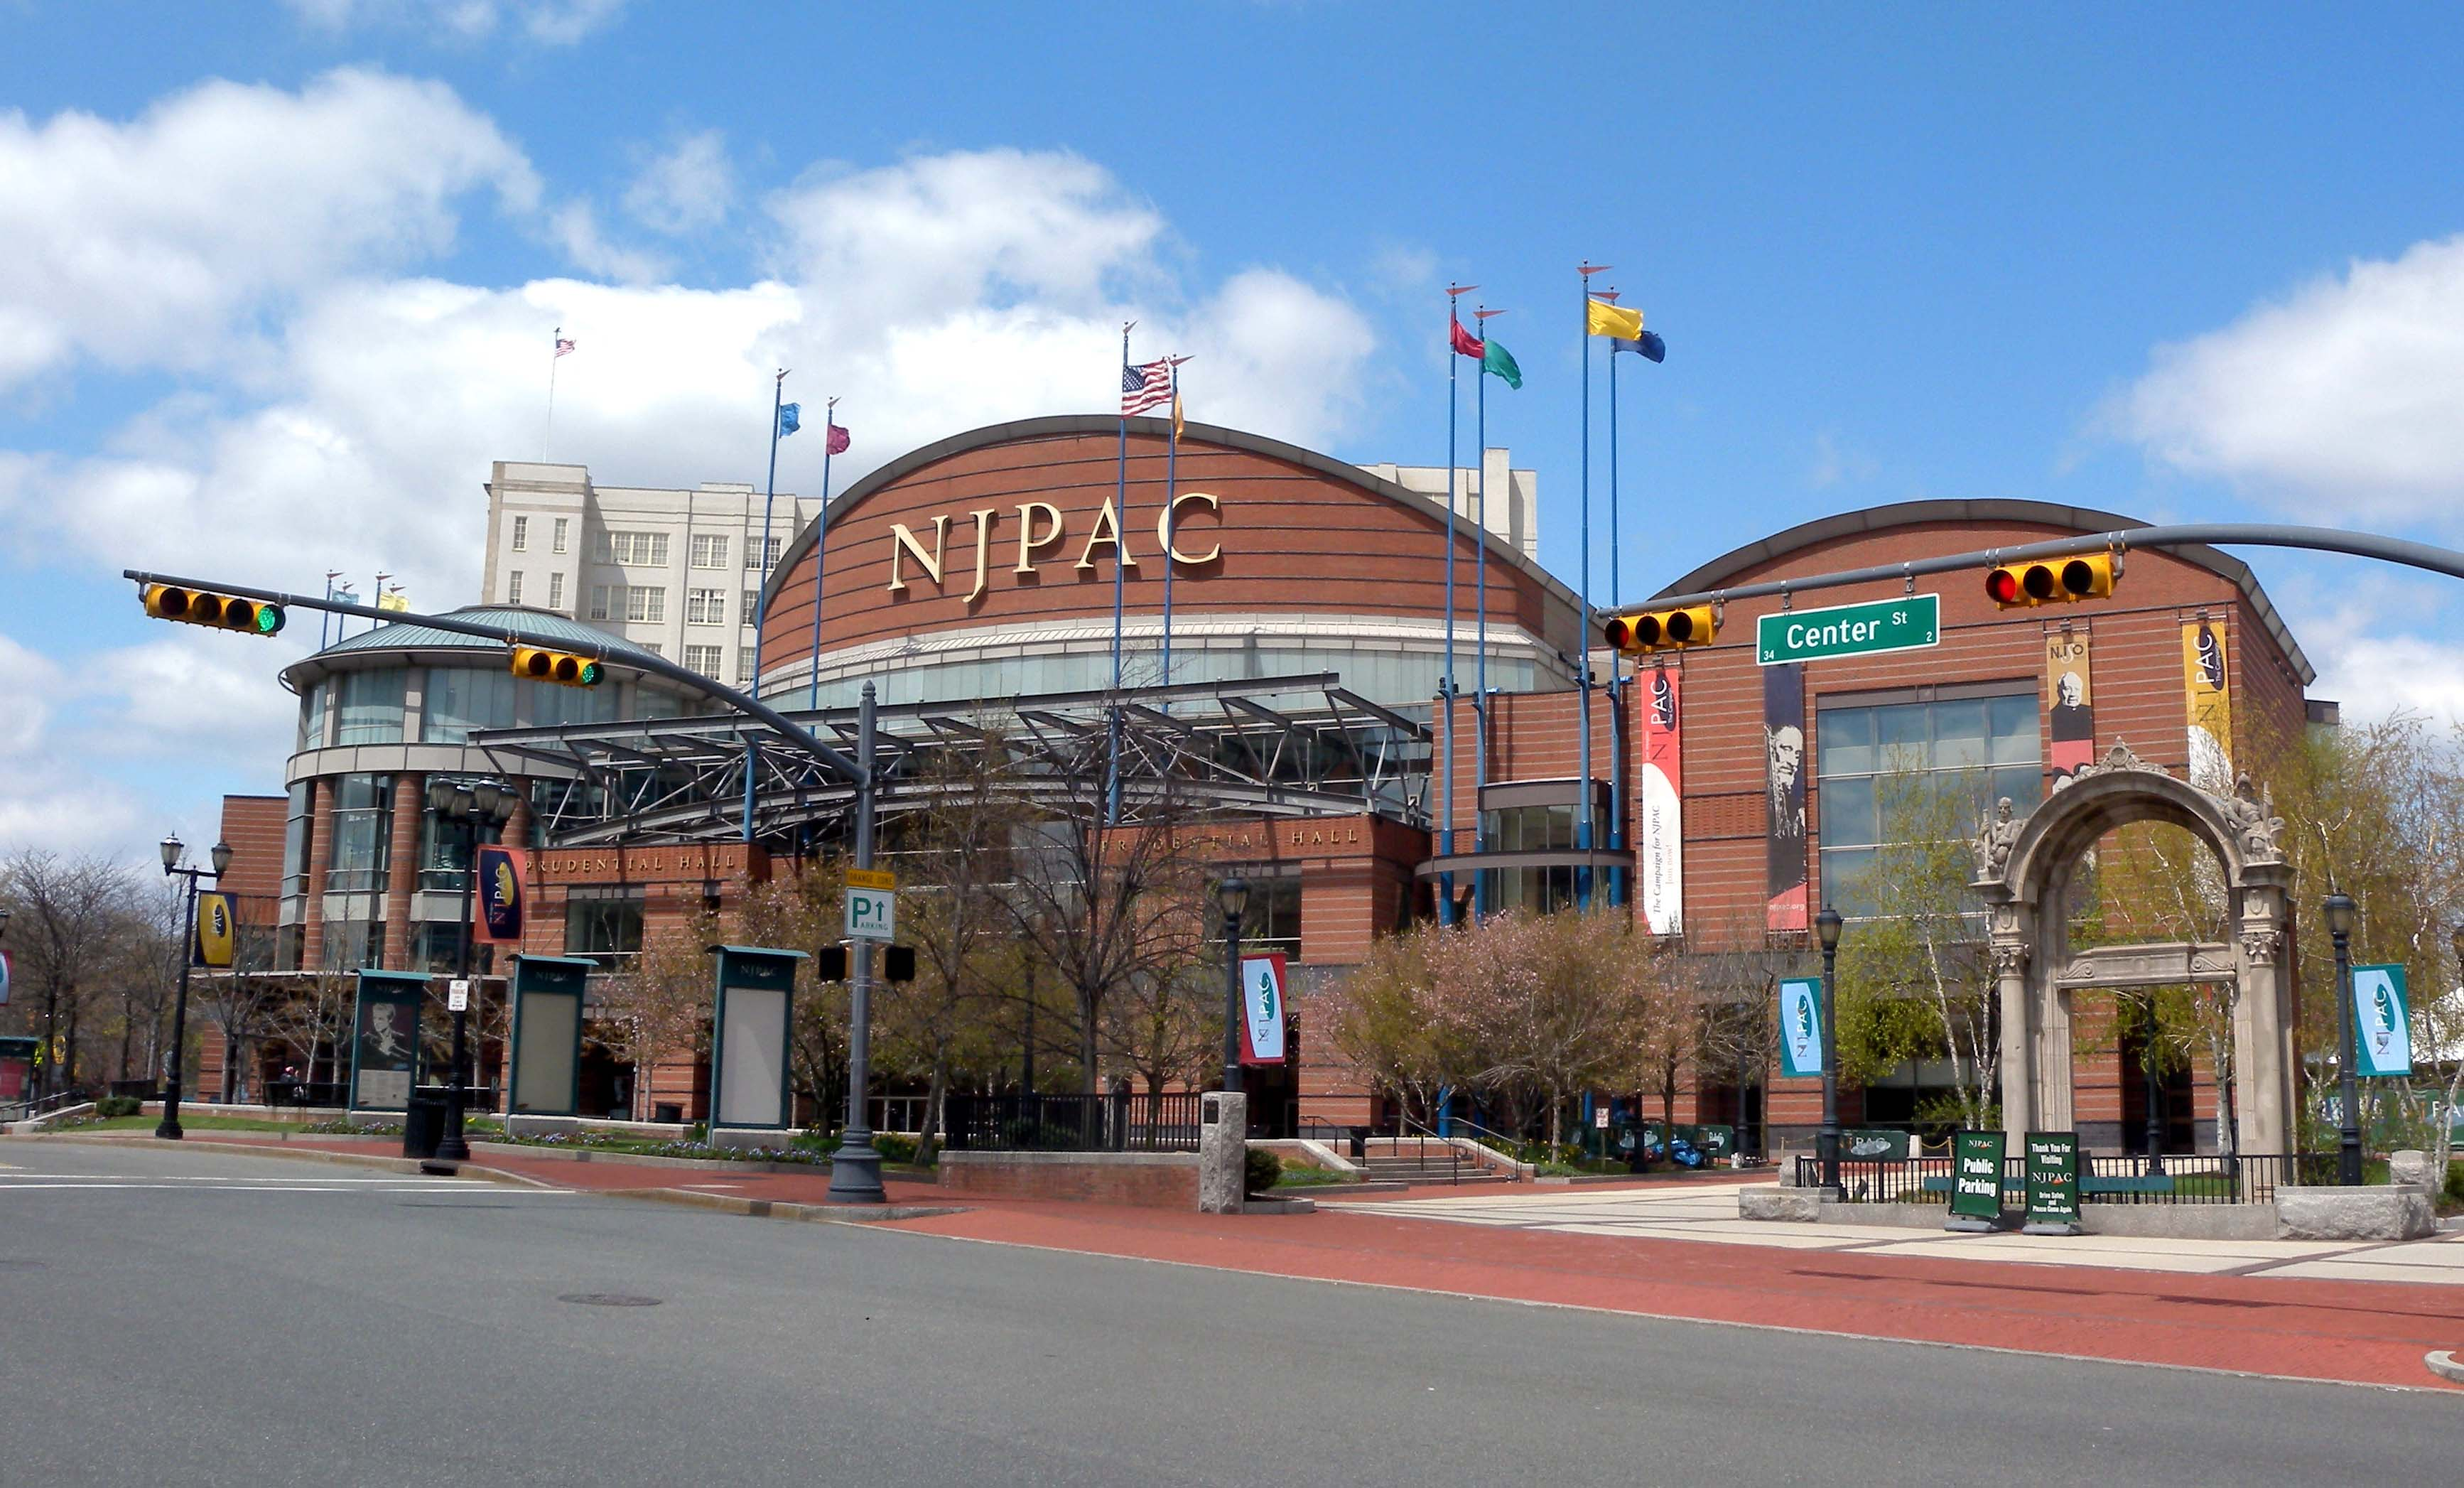 The New Jersey Performing Arts Center (NJPAC) on April 23, 2009. (Jim Henderson/PD)